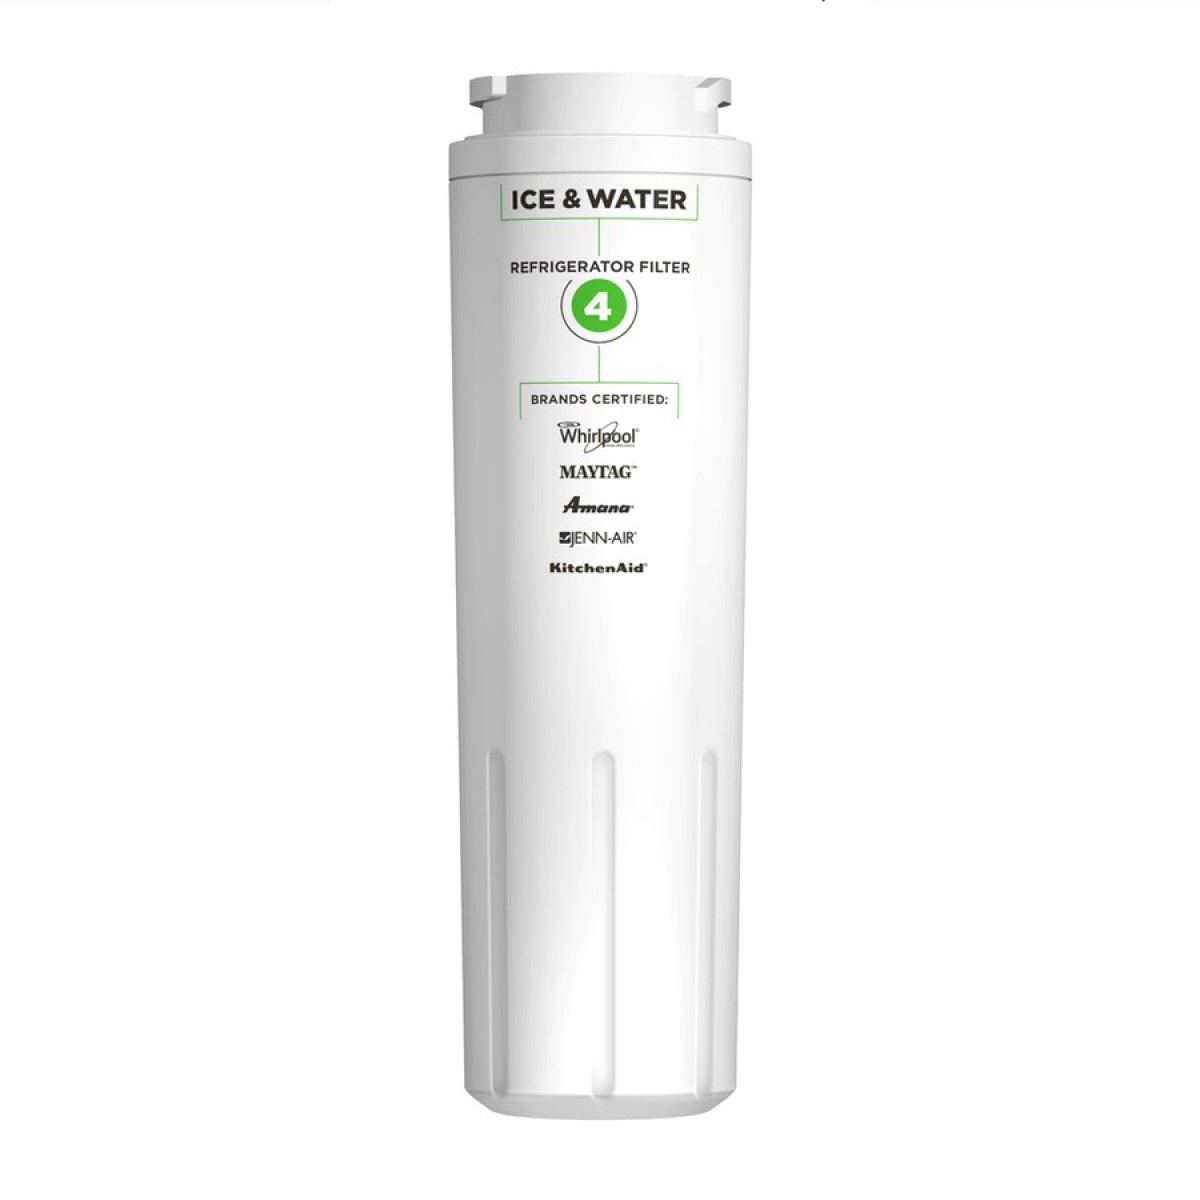 Everydrop ice and water refrigerator filter 4 by whirlpool - Whirlpool refrigerator ice and water filter pur ...